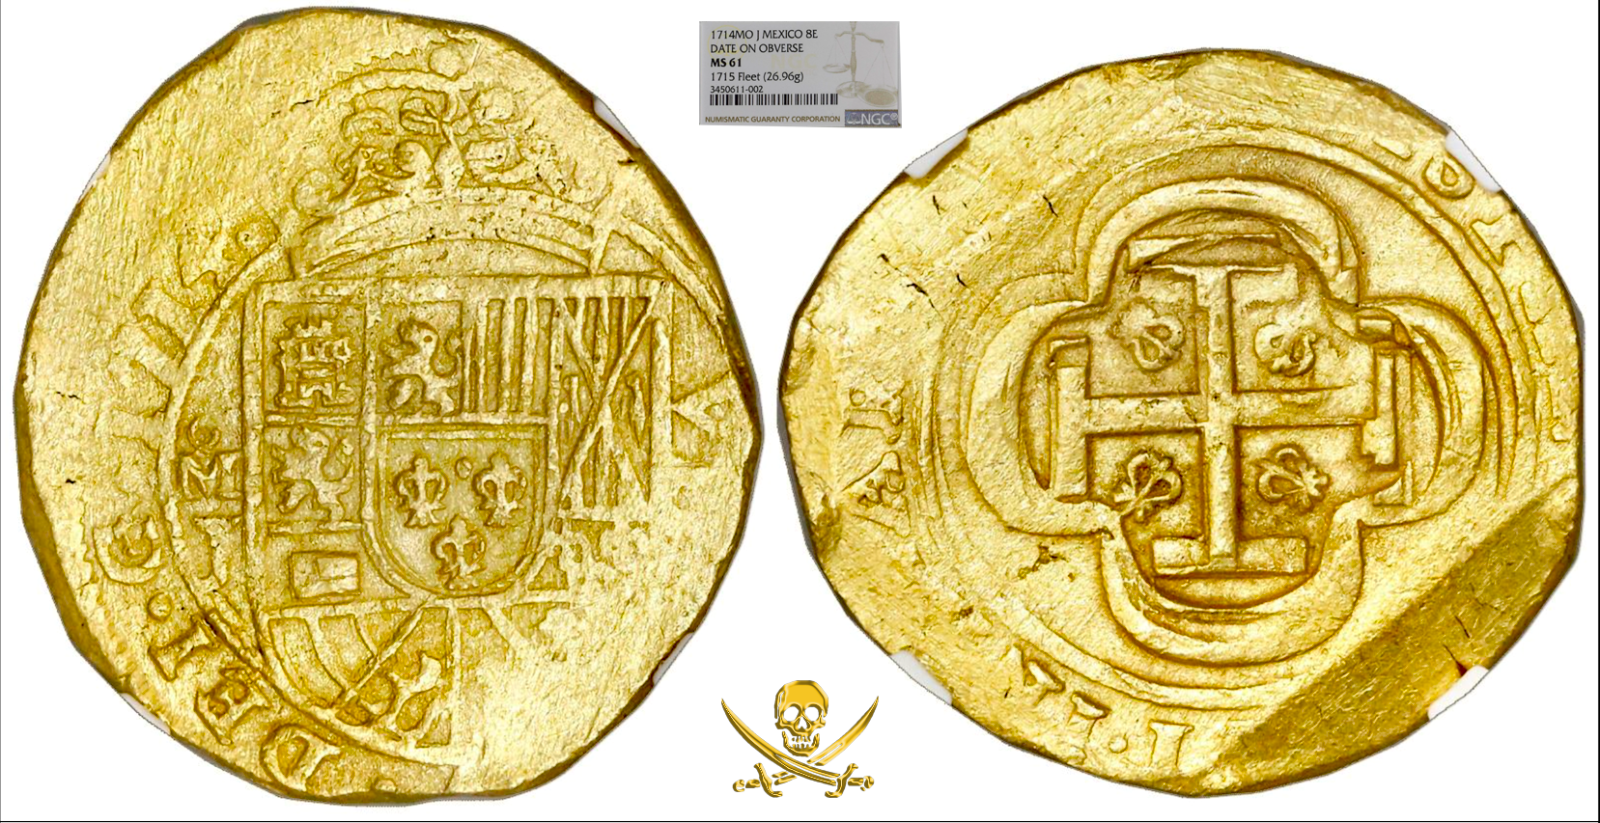 MEXICO 1714 DATED 8 ESCUDOS 1715 FLEET NGC 61 PIRATE GOLD COINS SHIPWRECK TREASR